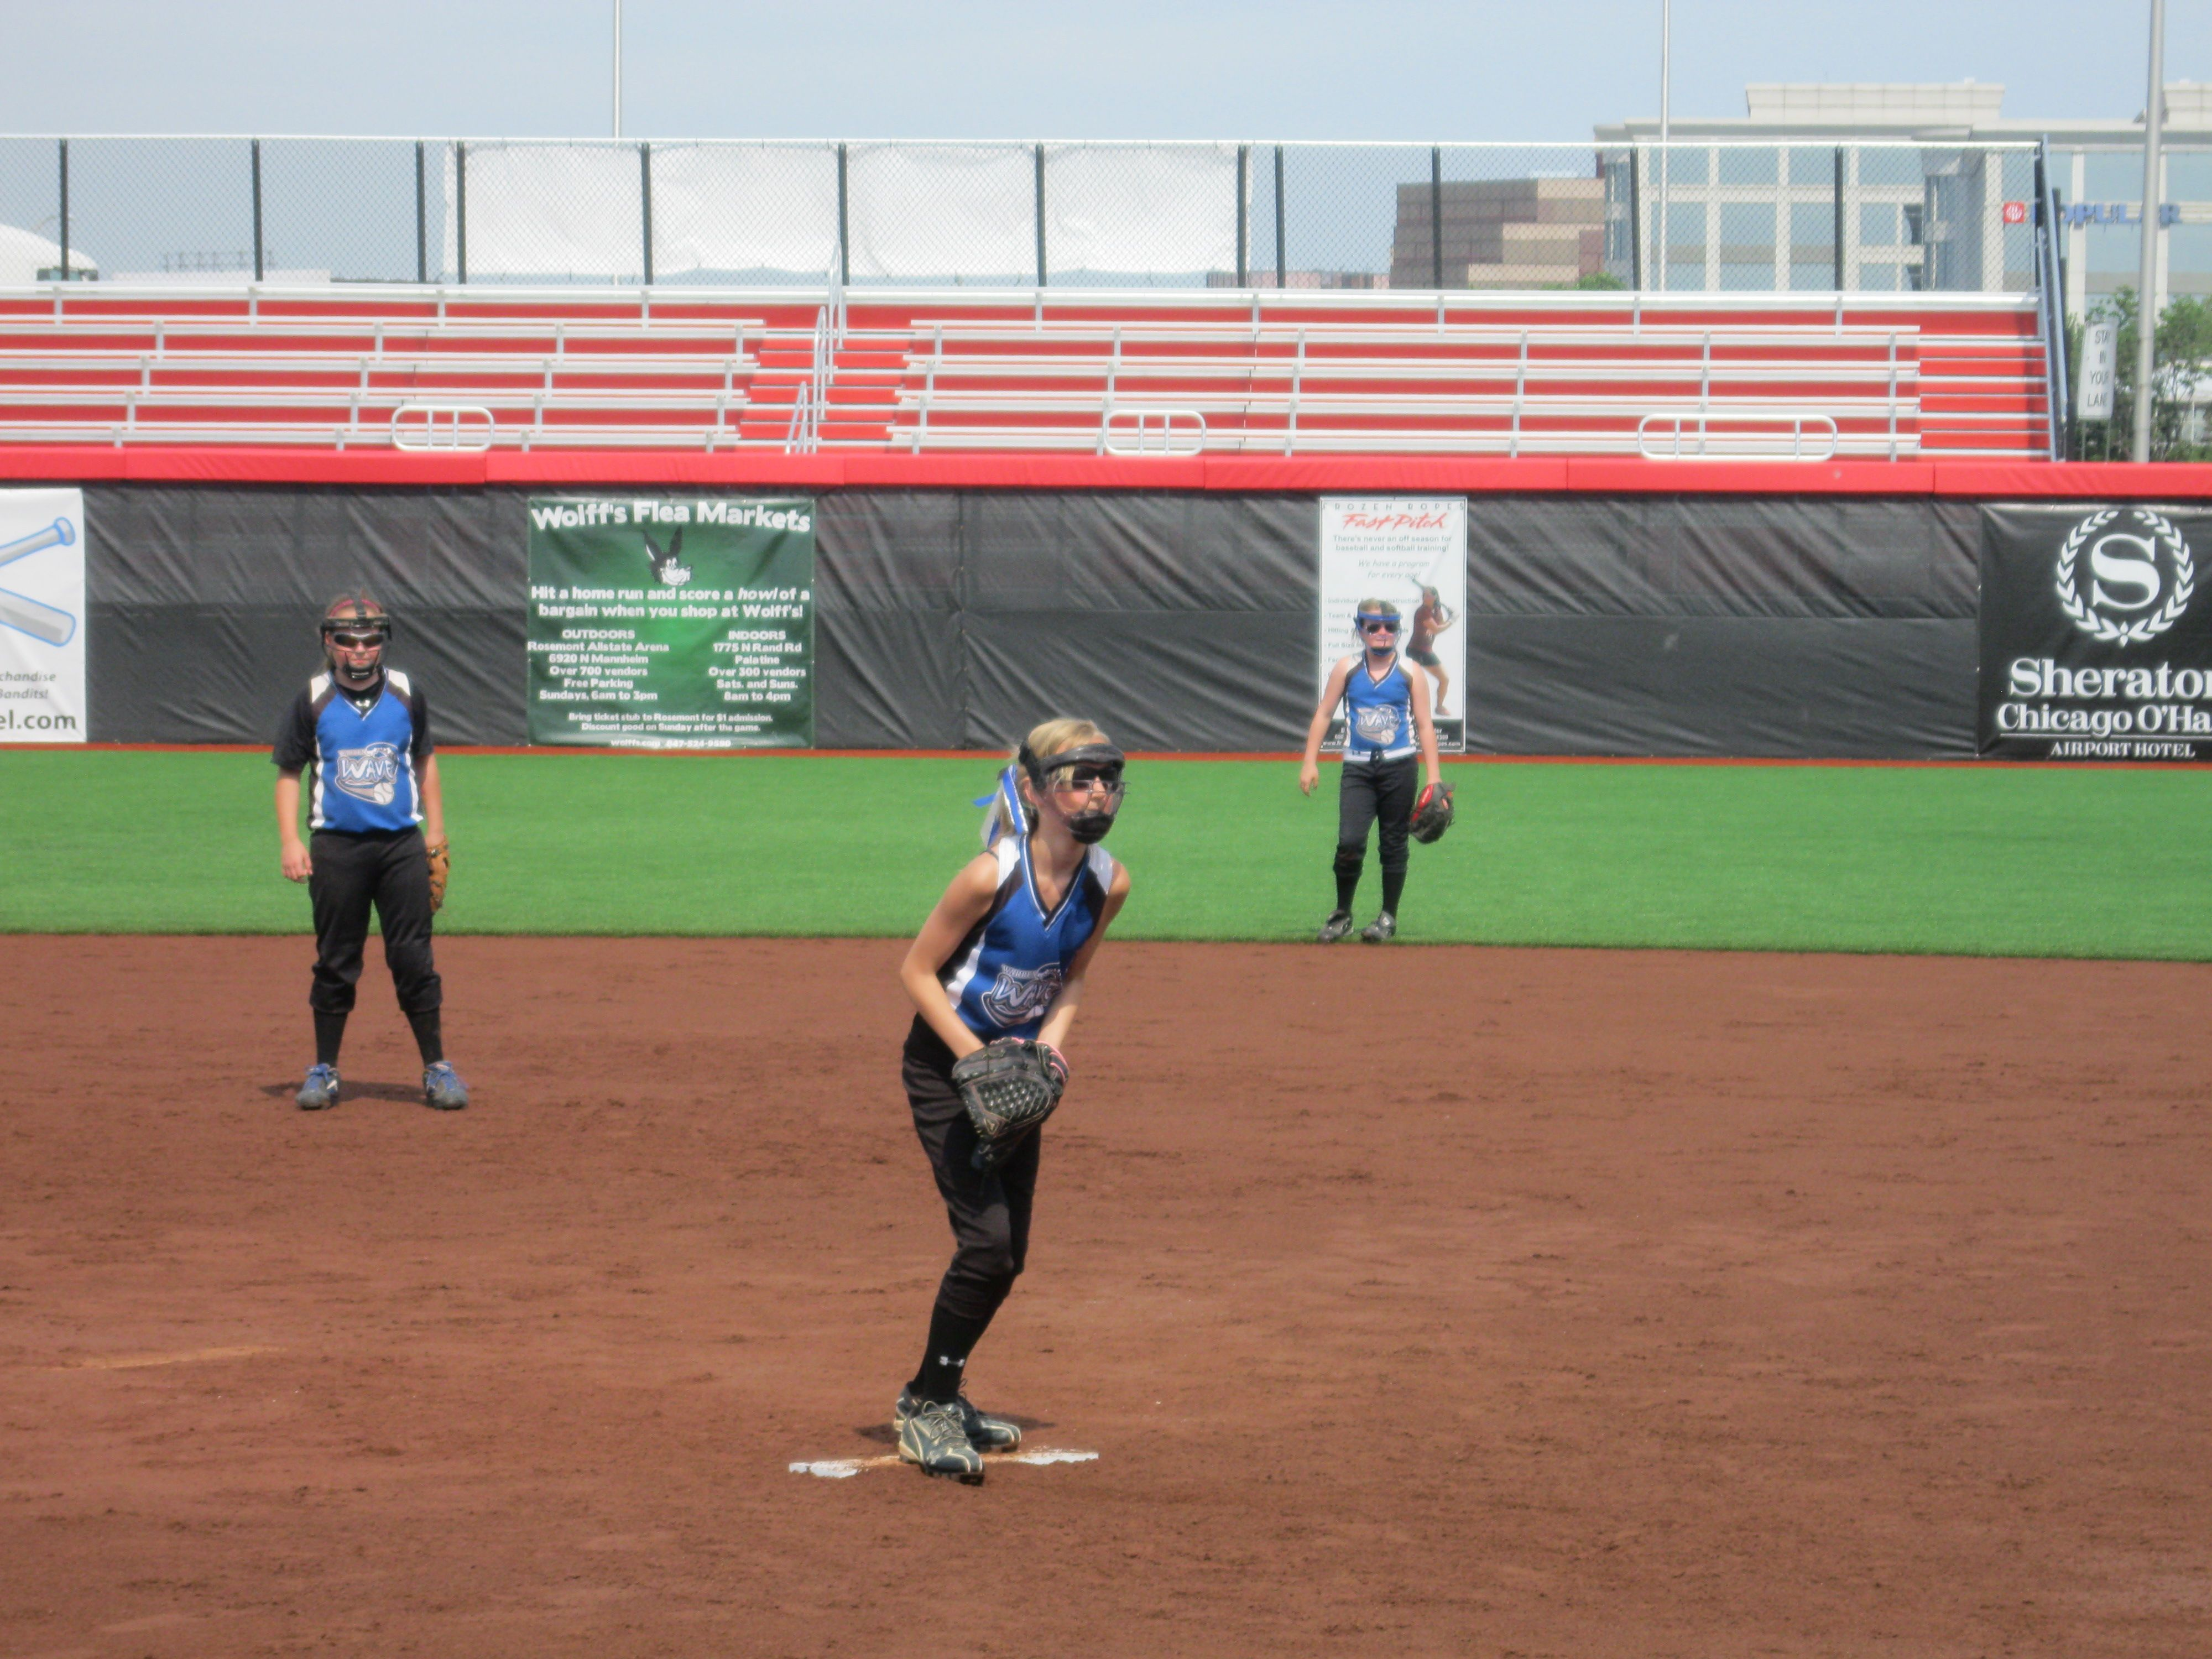 Taylor Pitching At The Bandit S Stadium With Images Stadium Granddaughter Basketball Court